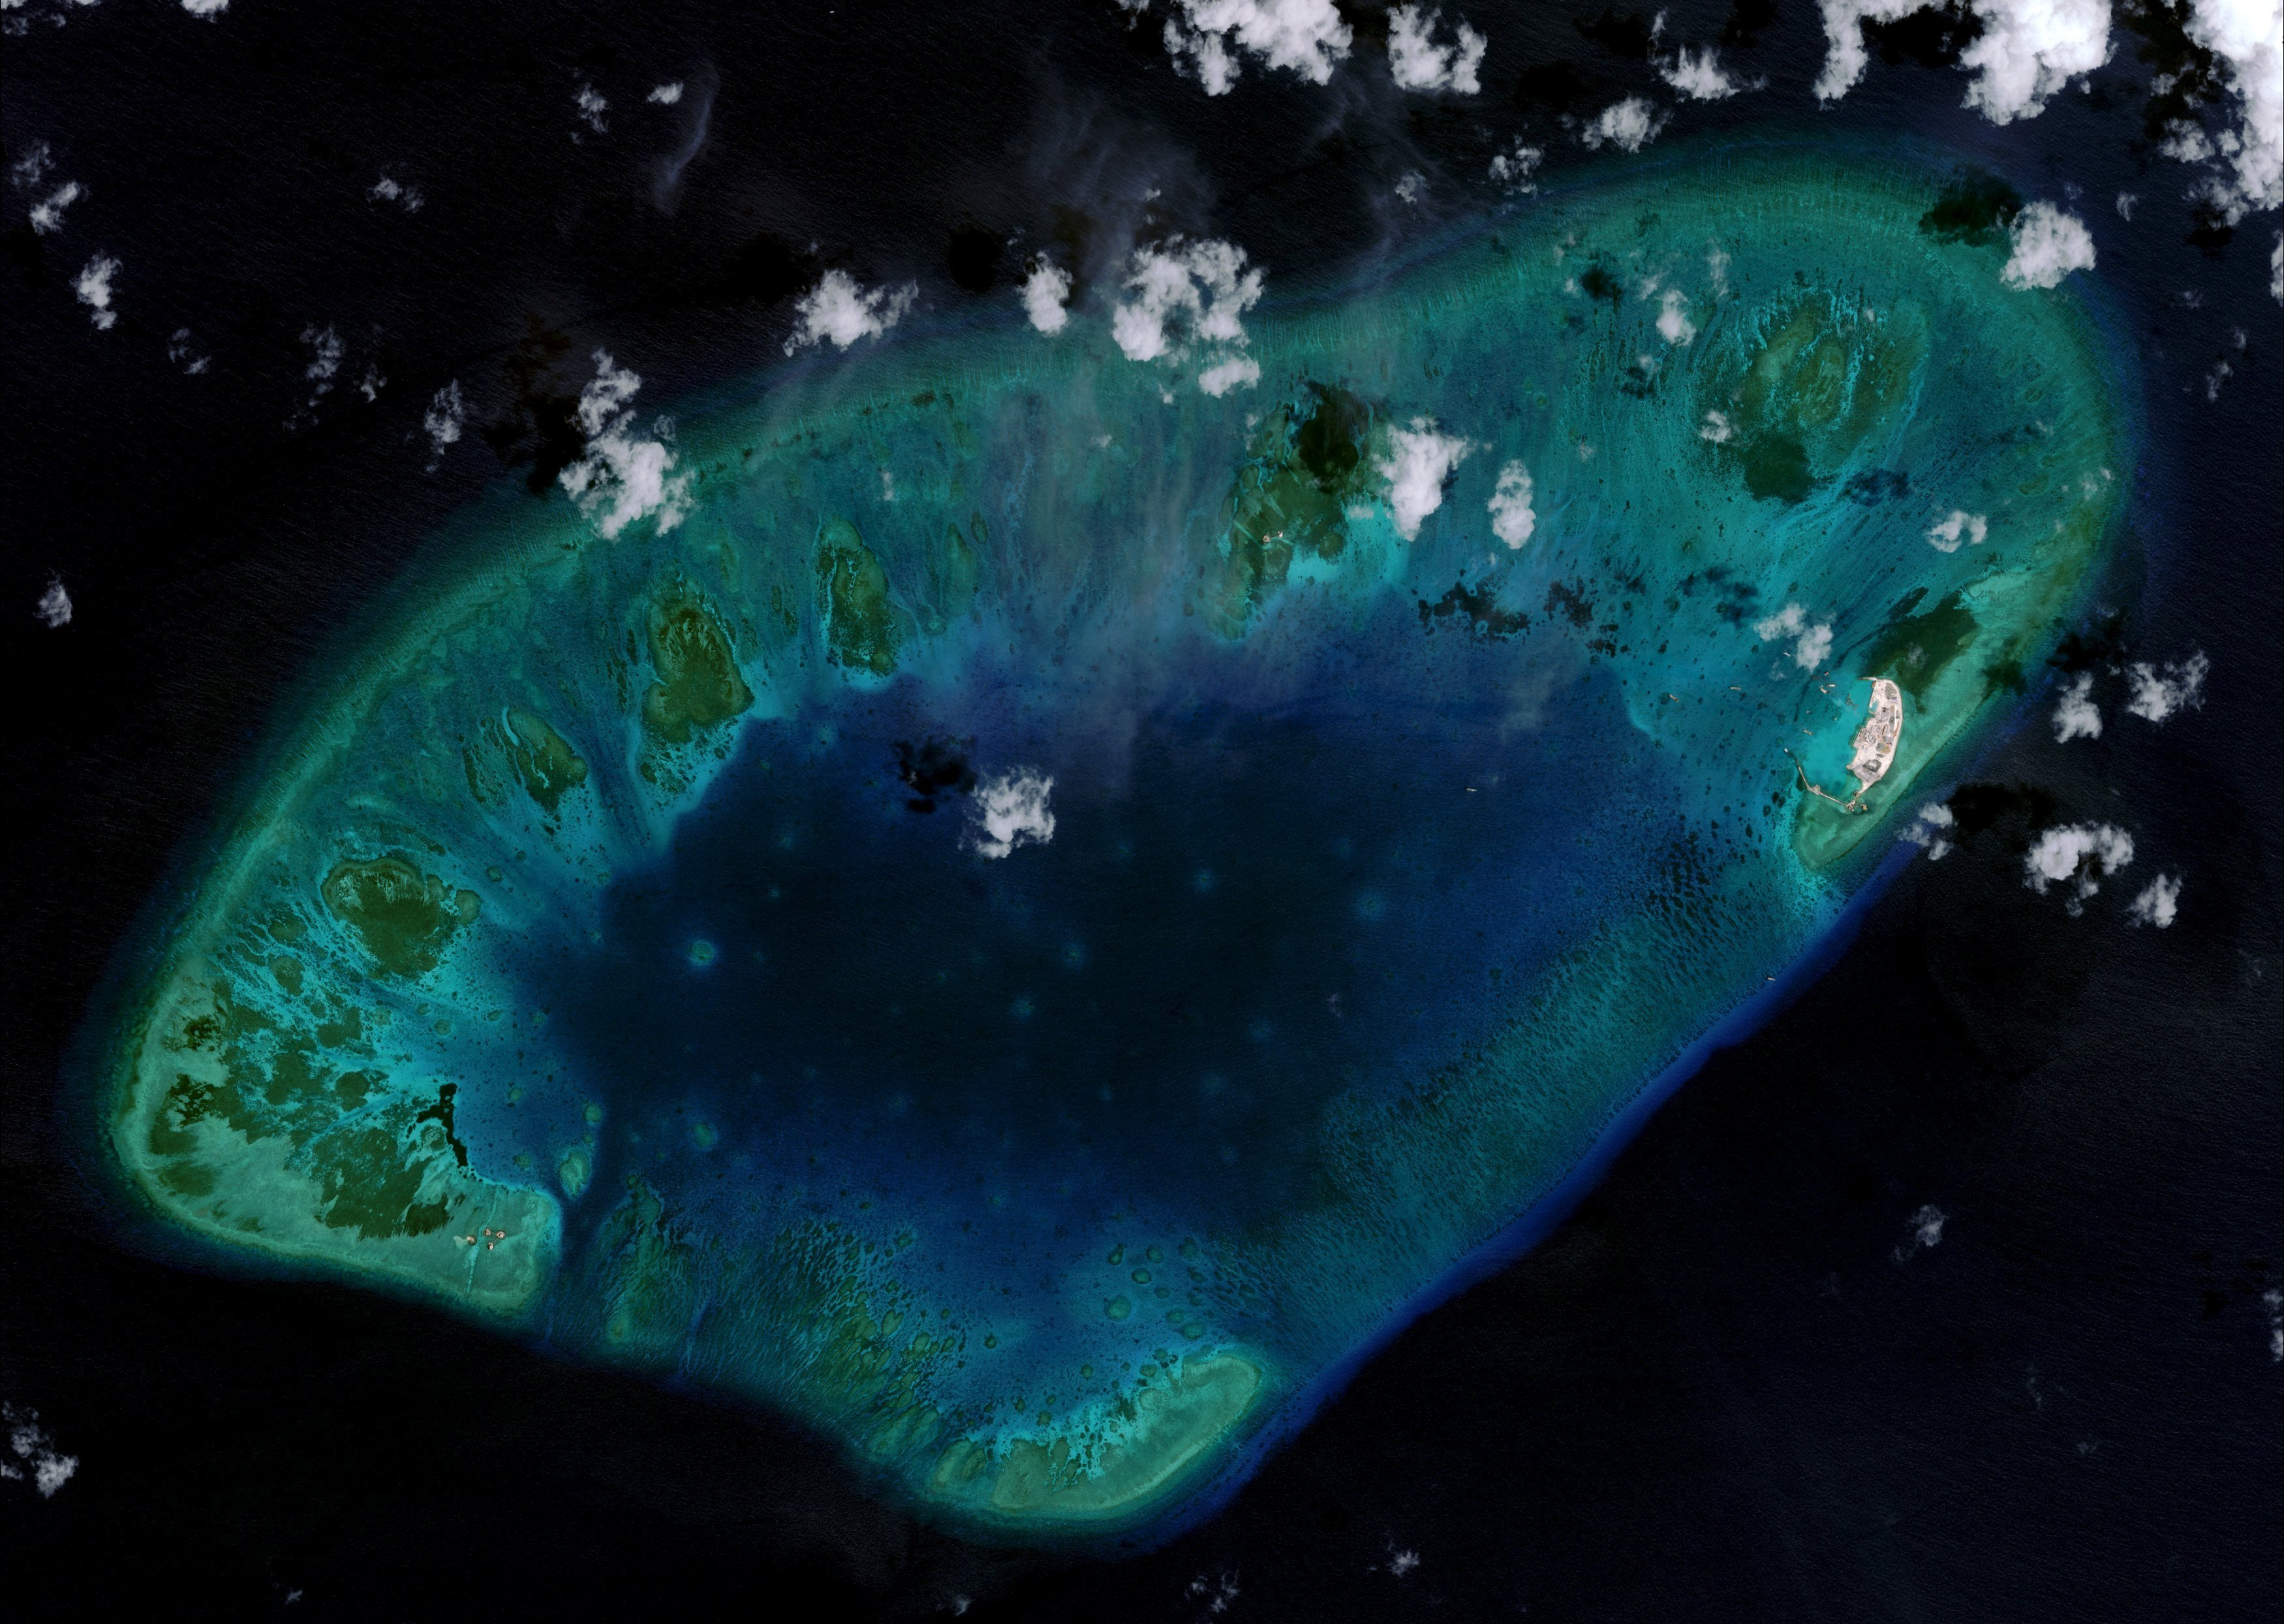 West London Reef is pictured in the South China Sea in 2015, in this handout photo provided by CSIS Asia Maritime Transparency Initiative/DigitalGlobe. New satellite images show Vietnam has carried out significant land reclamation at two sites in the disputed South China Sea, but the scale and pace of the work is dwarfed by that of China, a U.S. research institute said on May 7, 2015